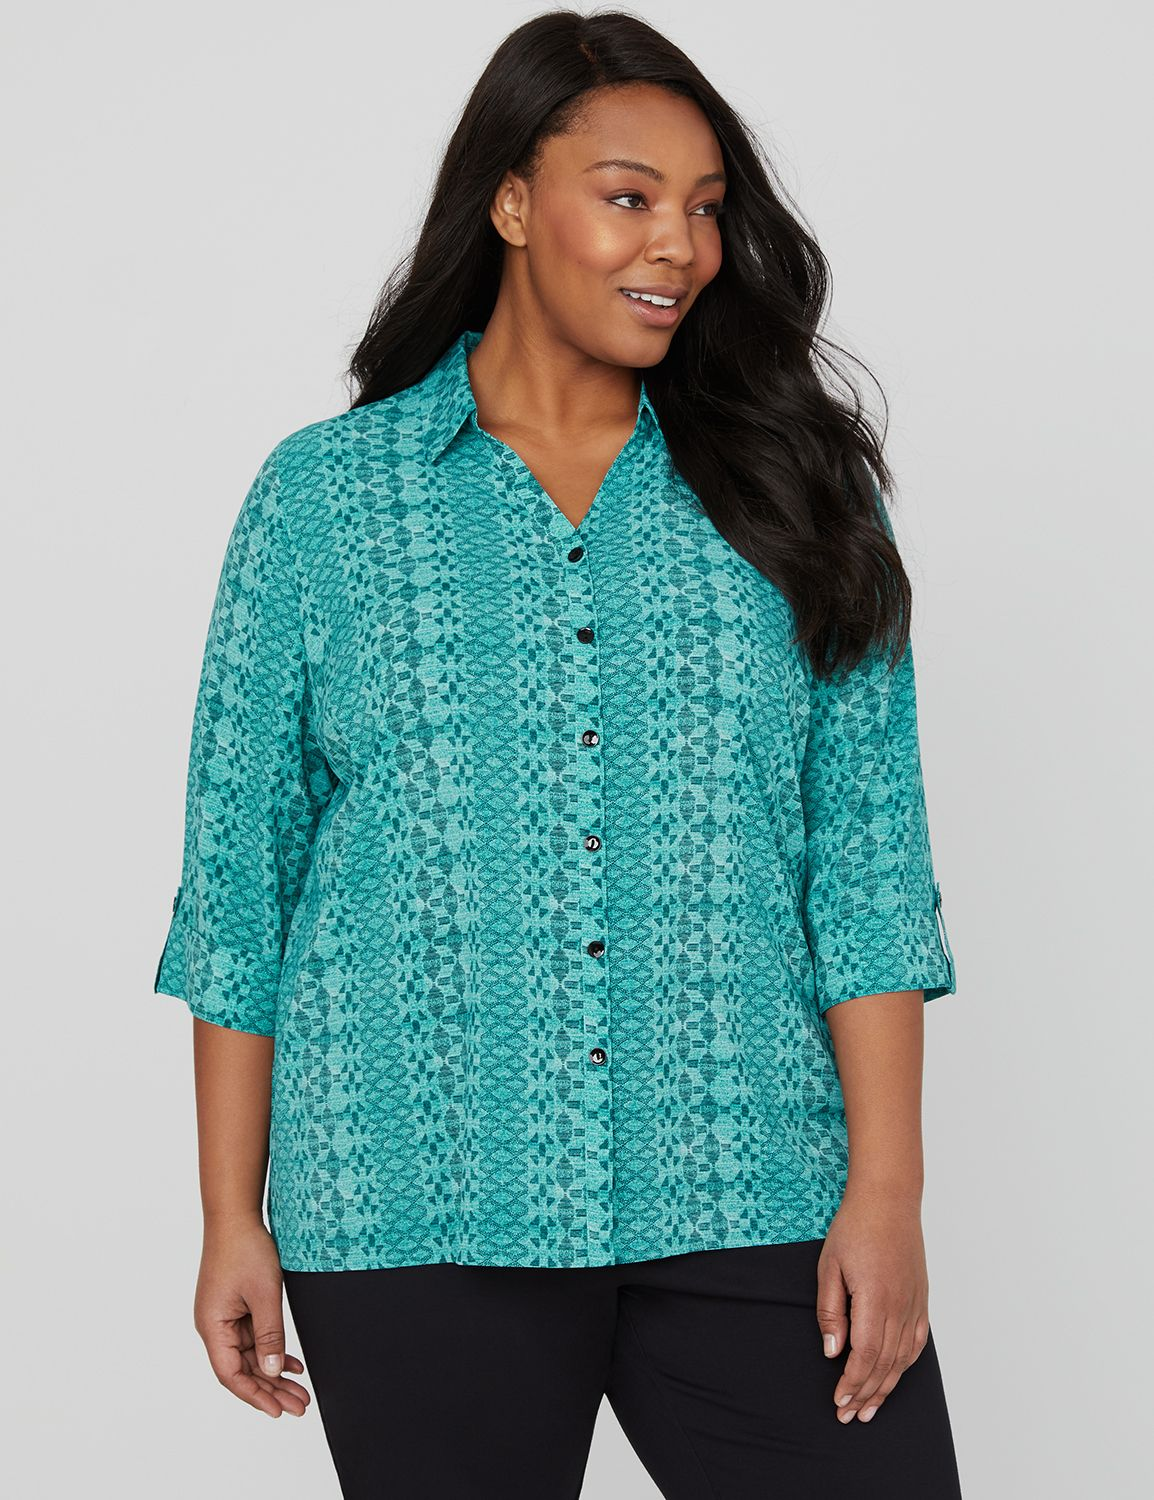 Maldives Buttonfront Shirt 3/4 Slv Collared CDC Blouse MP-300104917